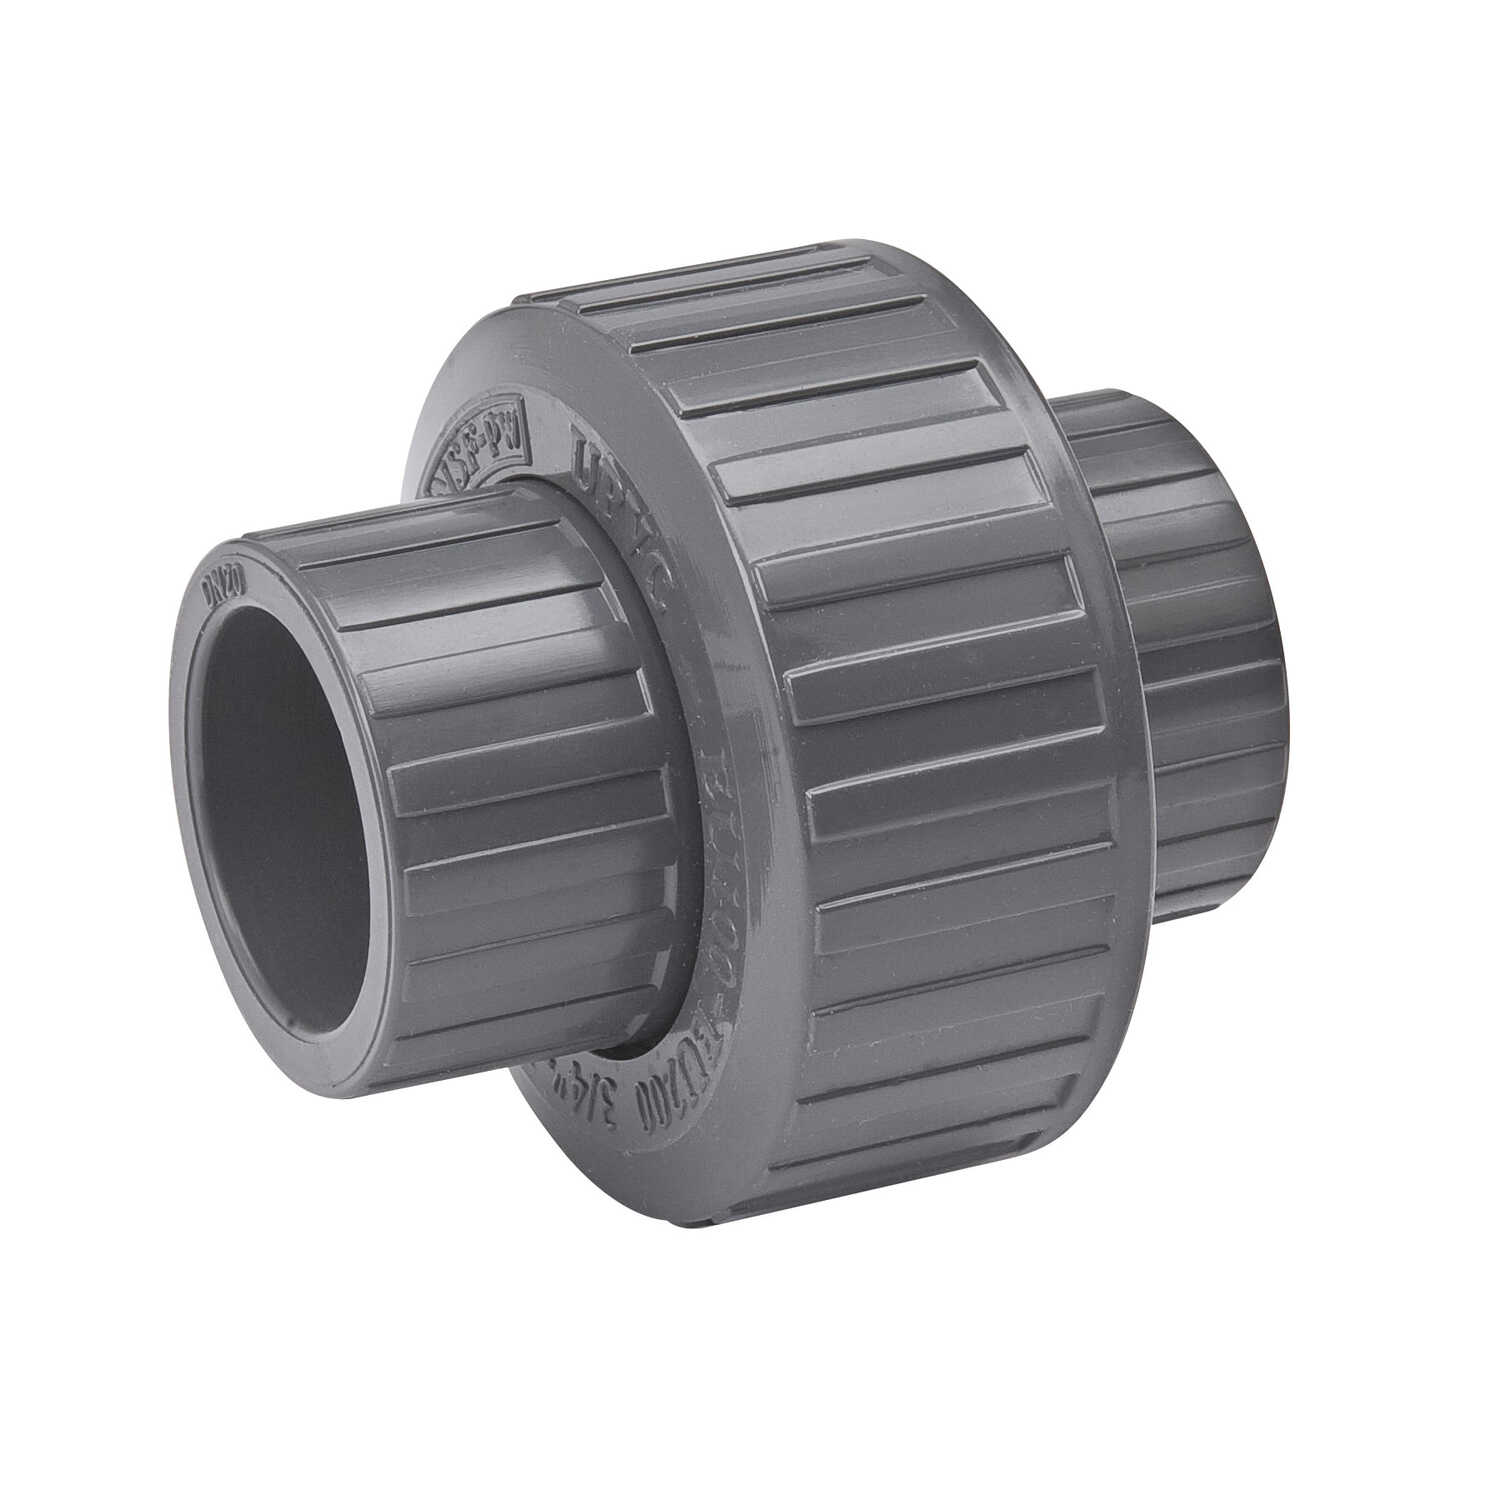 B & K  ProLine  Schedule 80  1-1/2 in. Socket   x 1-1/2 in. Dia. Socket  PVC  Union